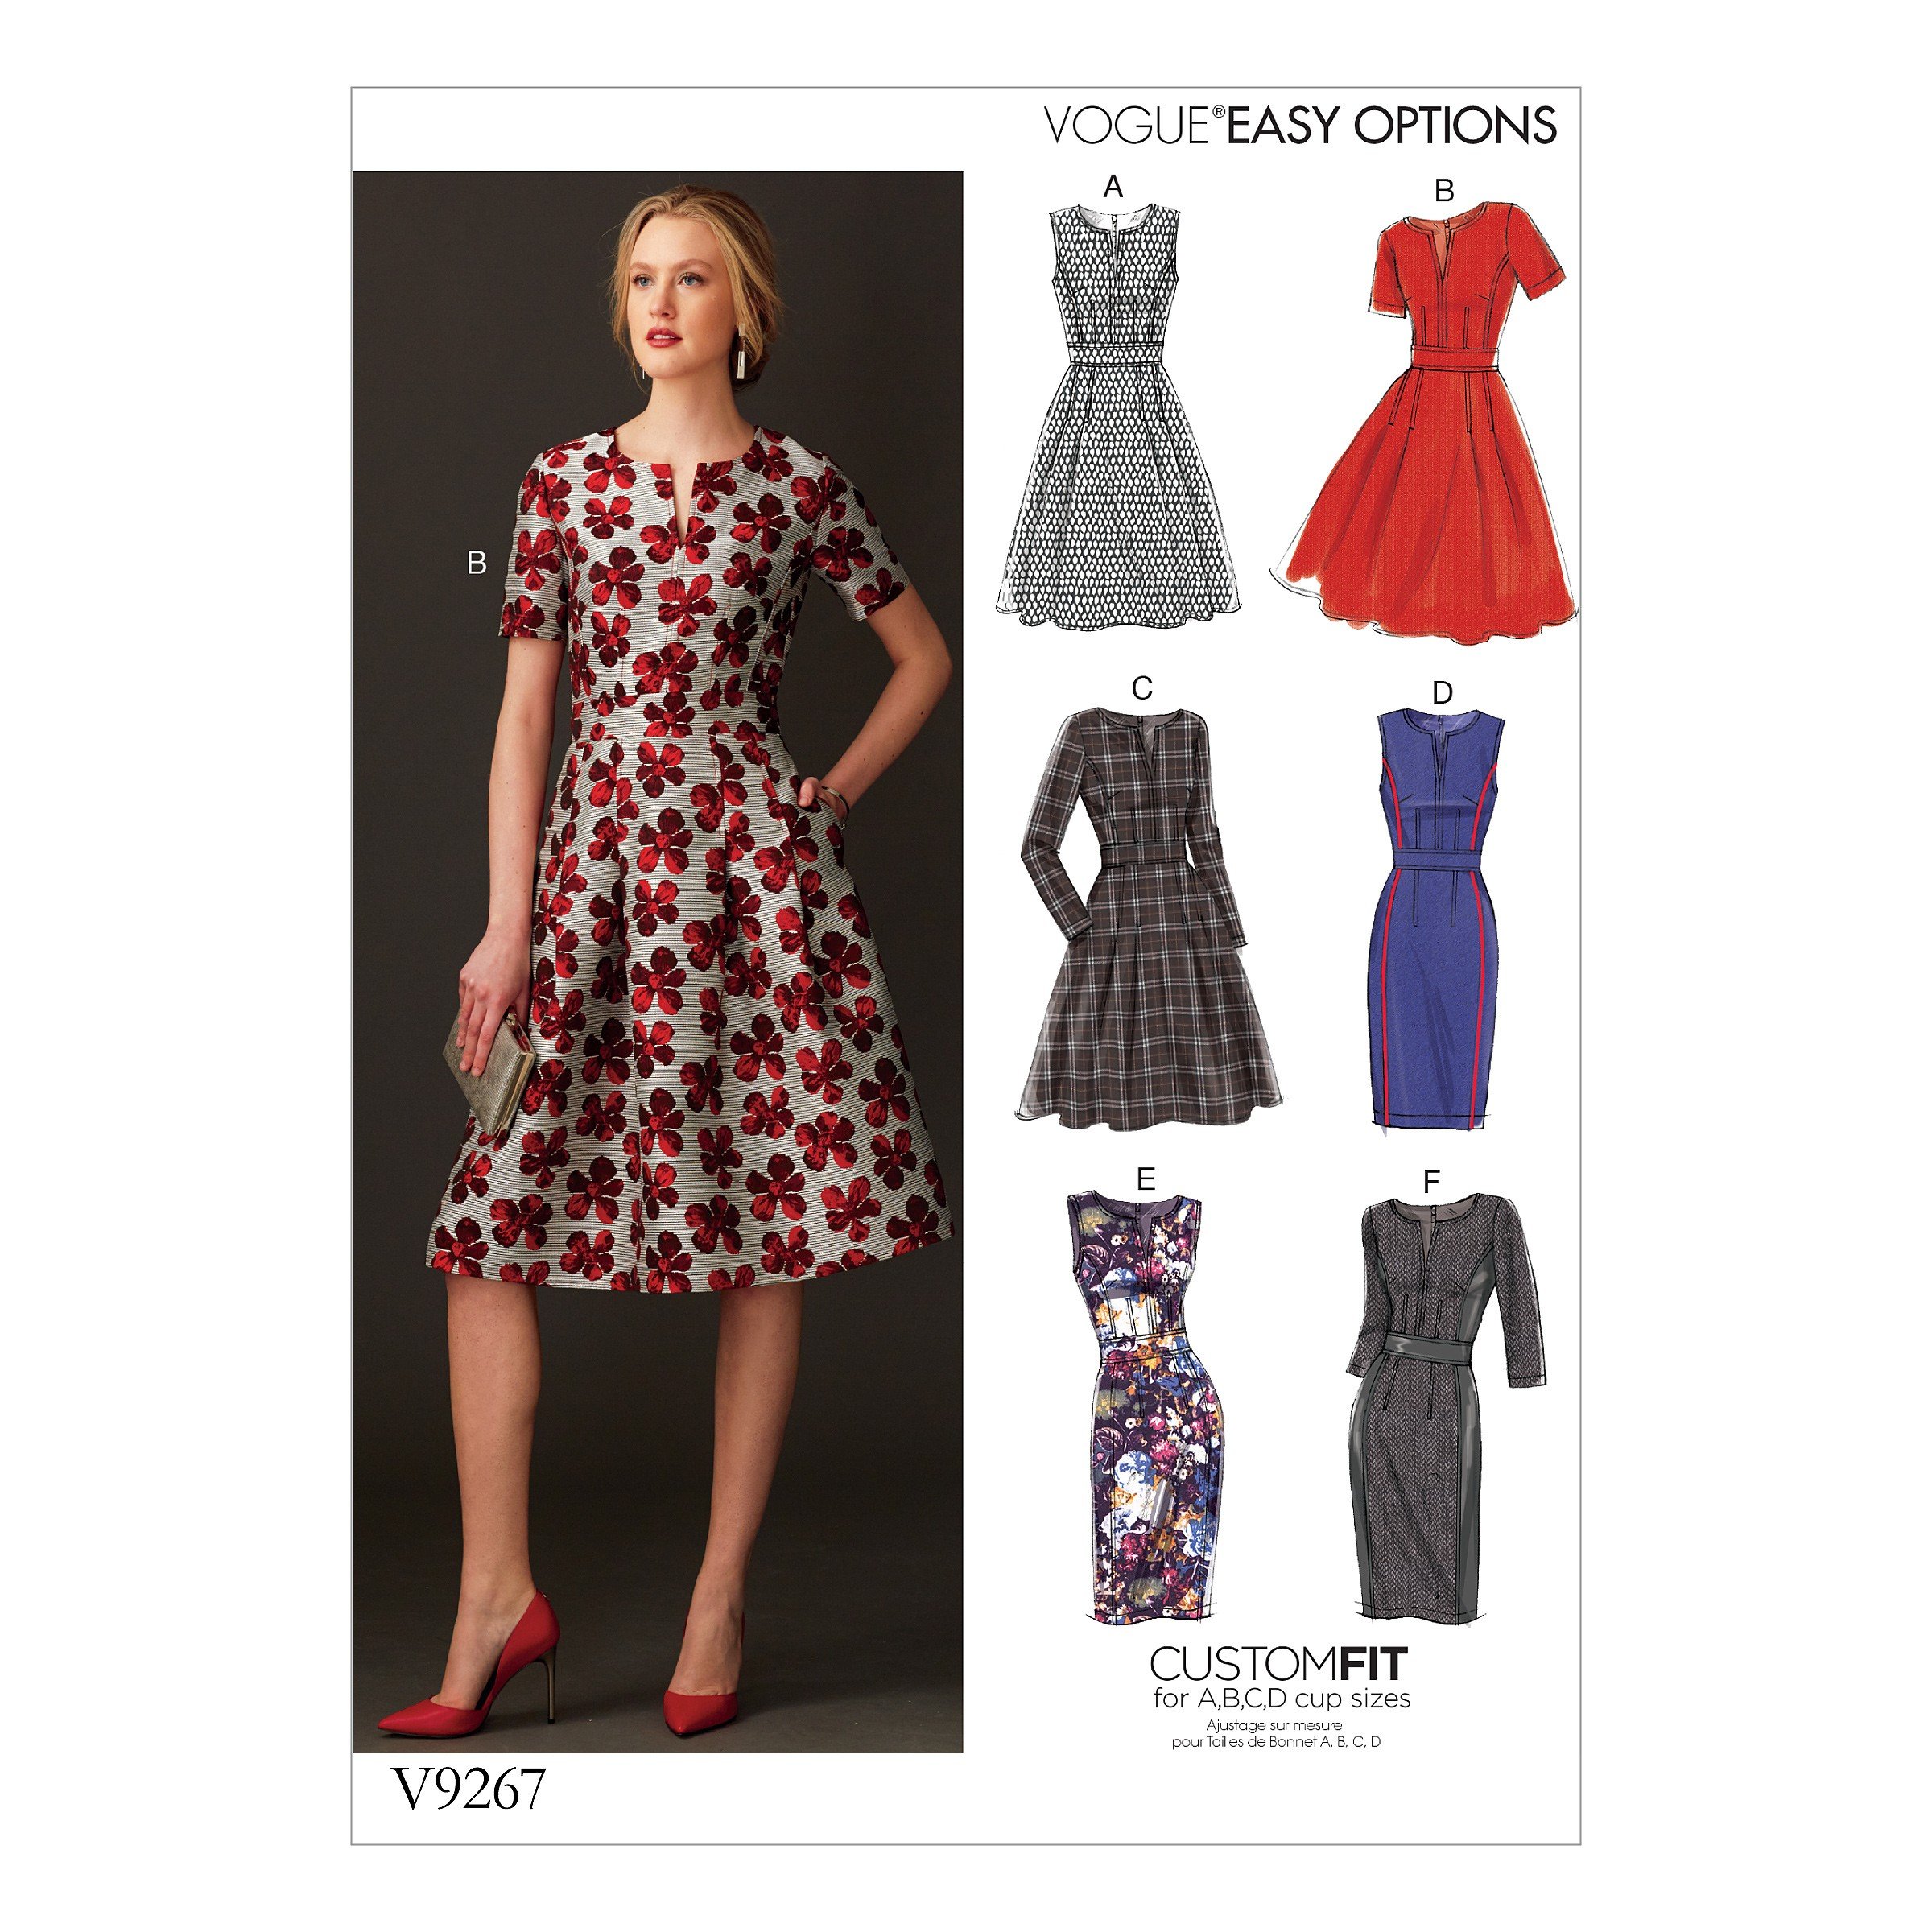 Vogue Sewing Pattern V9267 Women's Fit & Flare Dresses With Waistband & Pockets